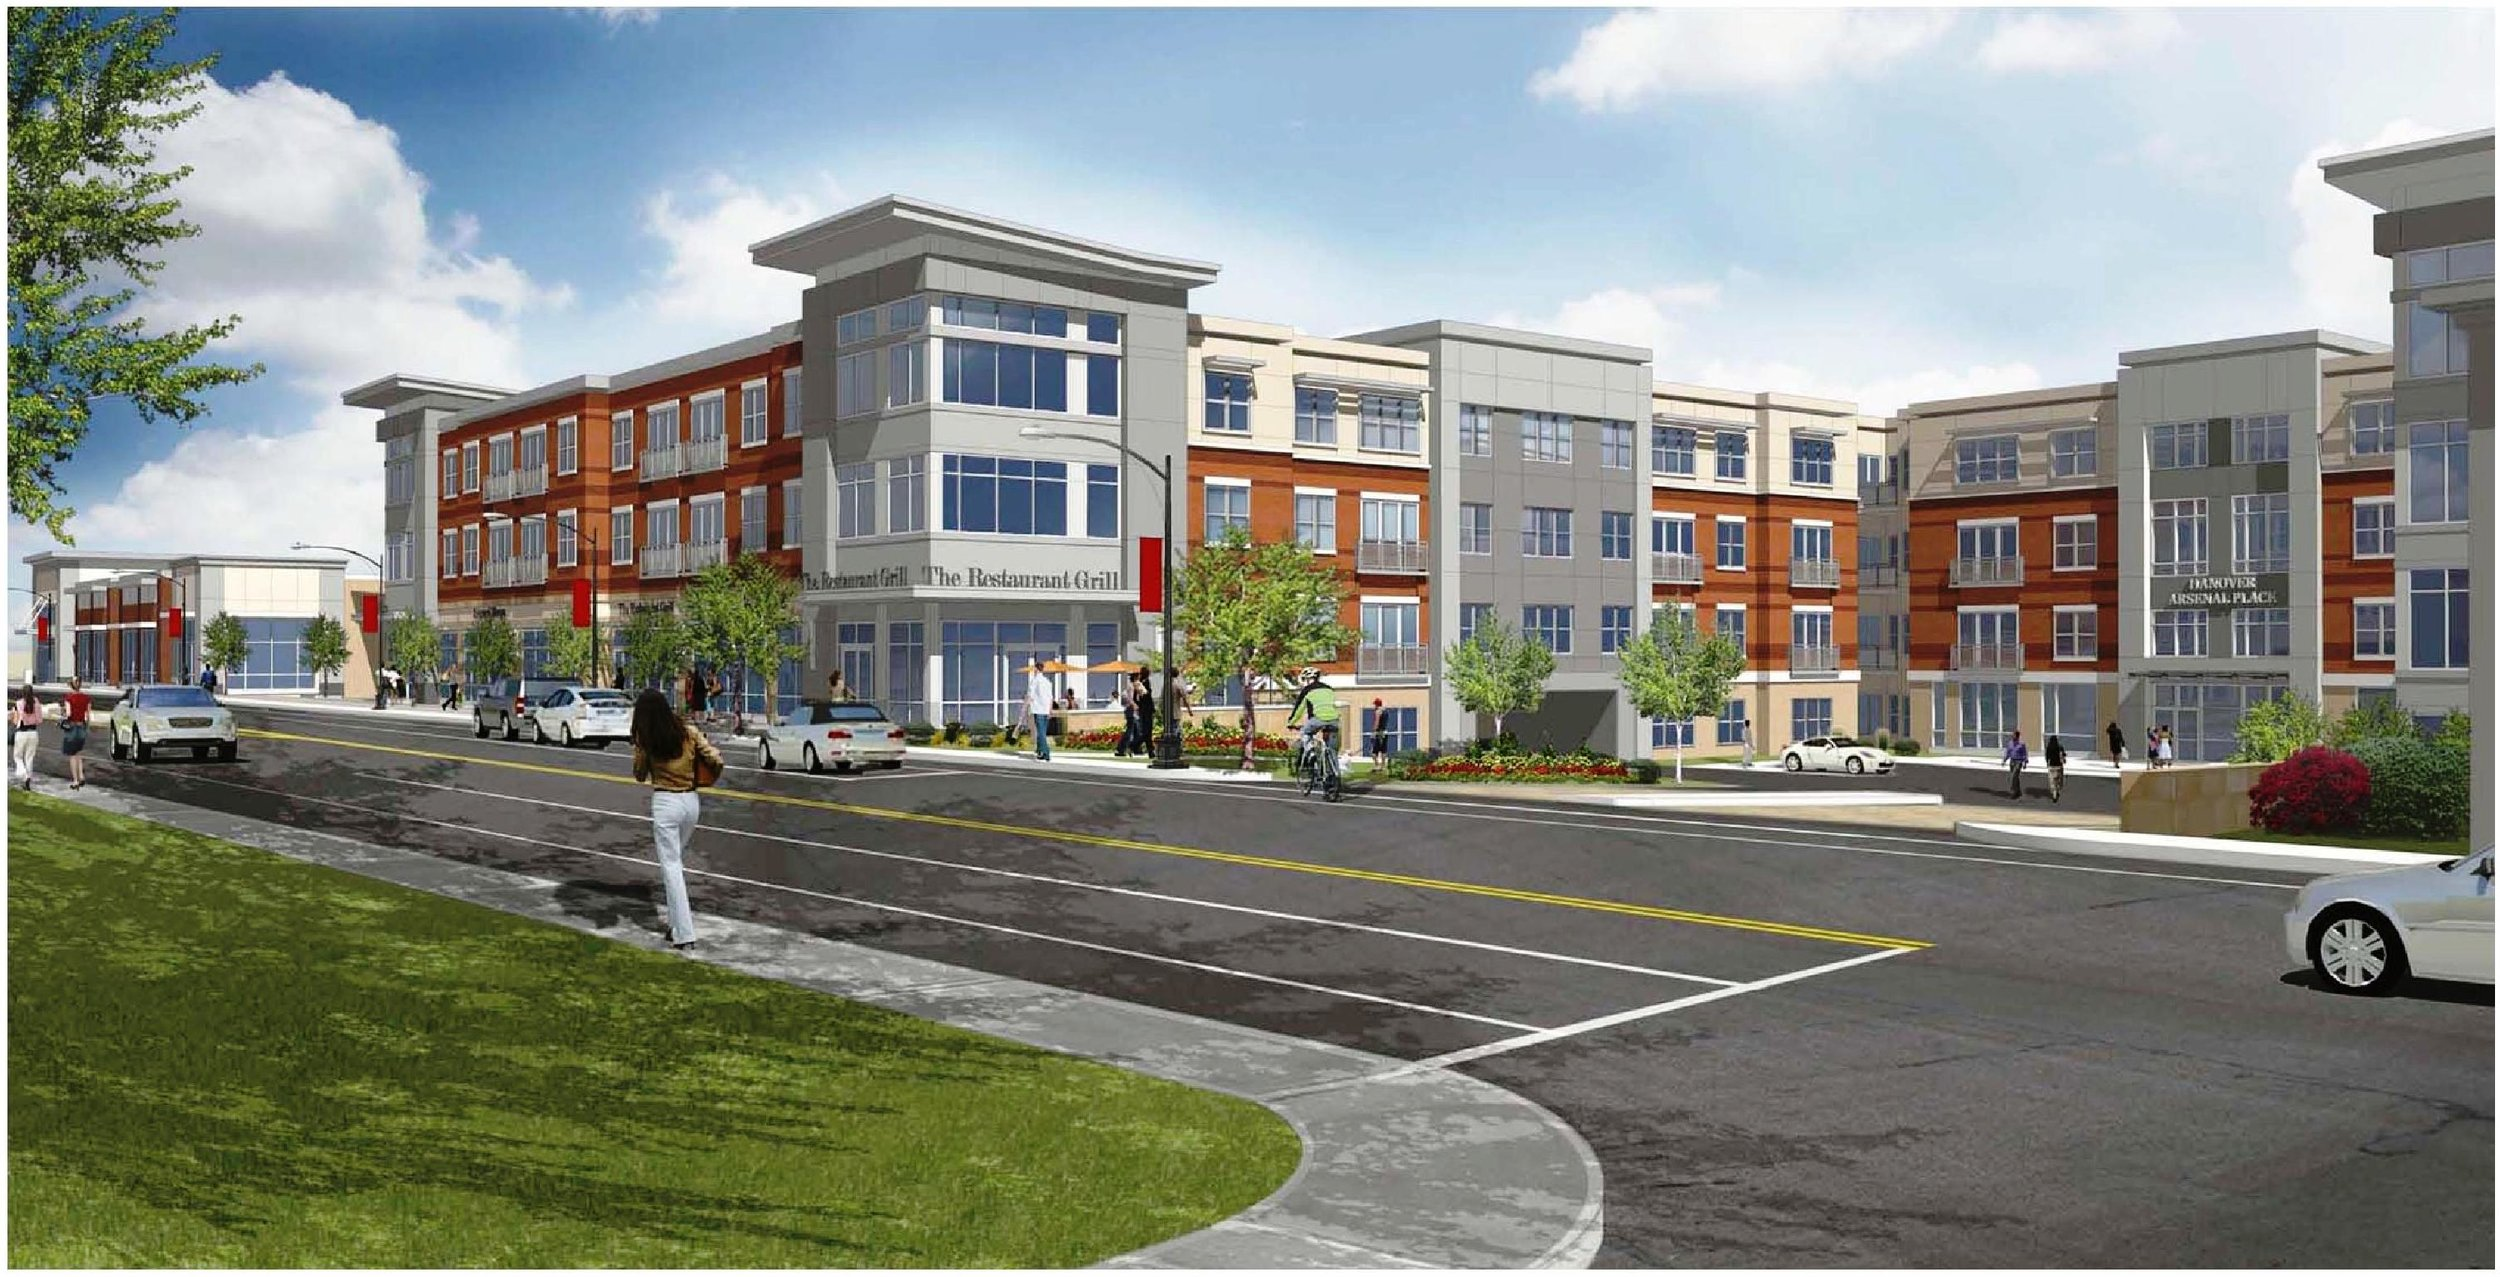 Arsenal Street Apartment and Retail Development - The project was permitted through the Town of Watertown for construction of approximately 300 apartment units, a 40,000 square foot supermarket, and 6,000 square feet of smaller retail space on Arsenal Street in Watertown, Massachusetts.  RMA prepared the Traffic Impact and Access Study as well as conceptual designs for the traffic mitigation necessitated by the project.